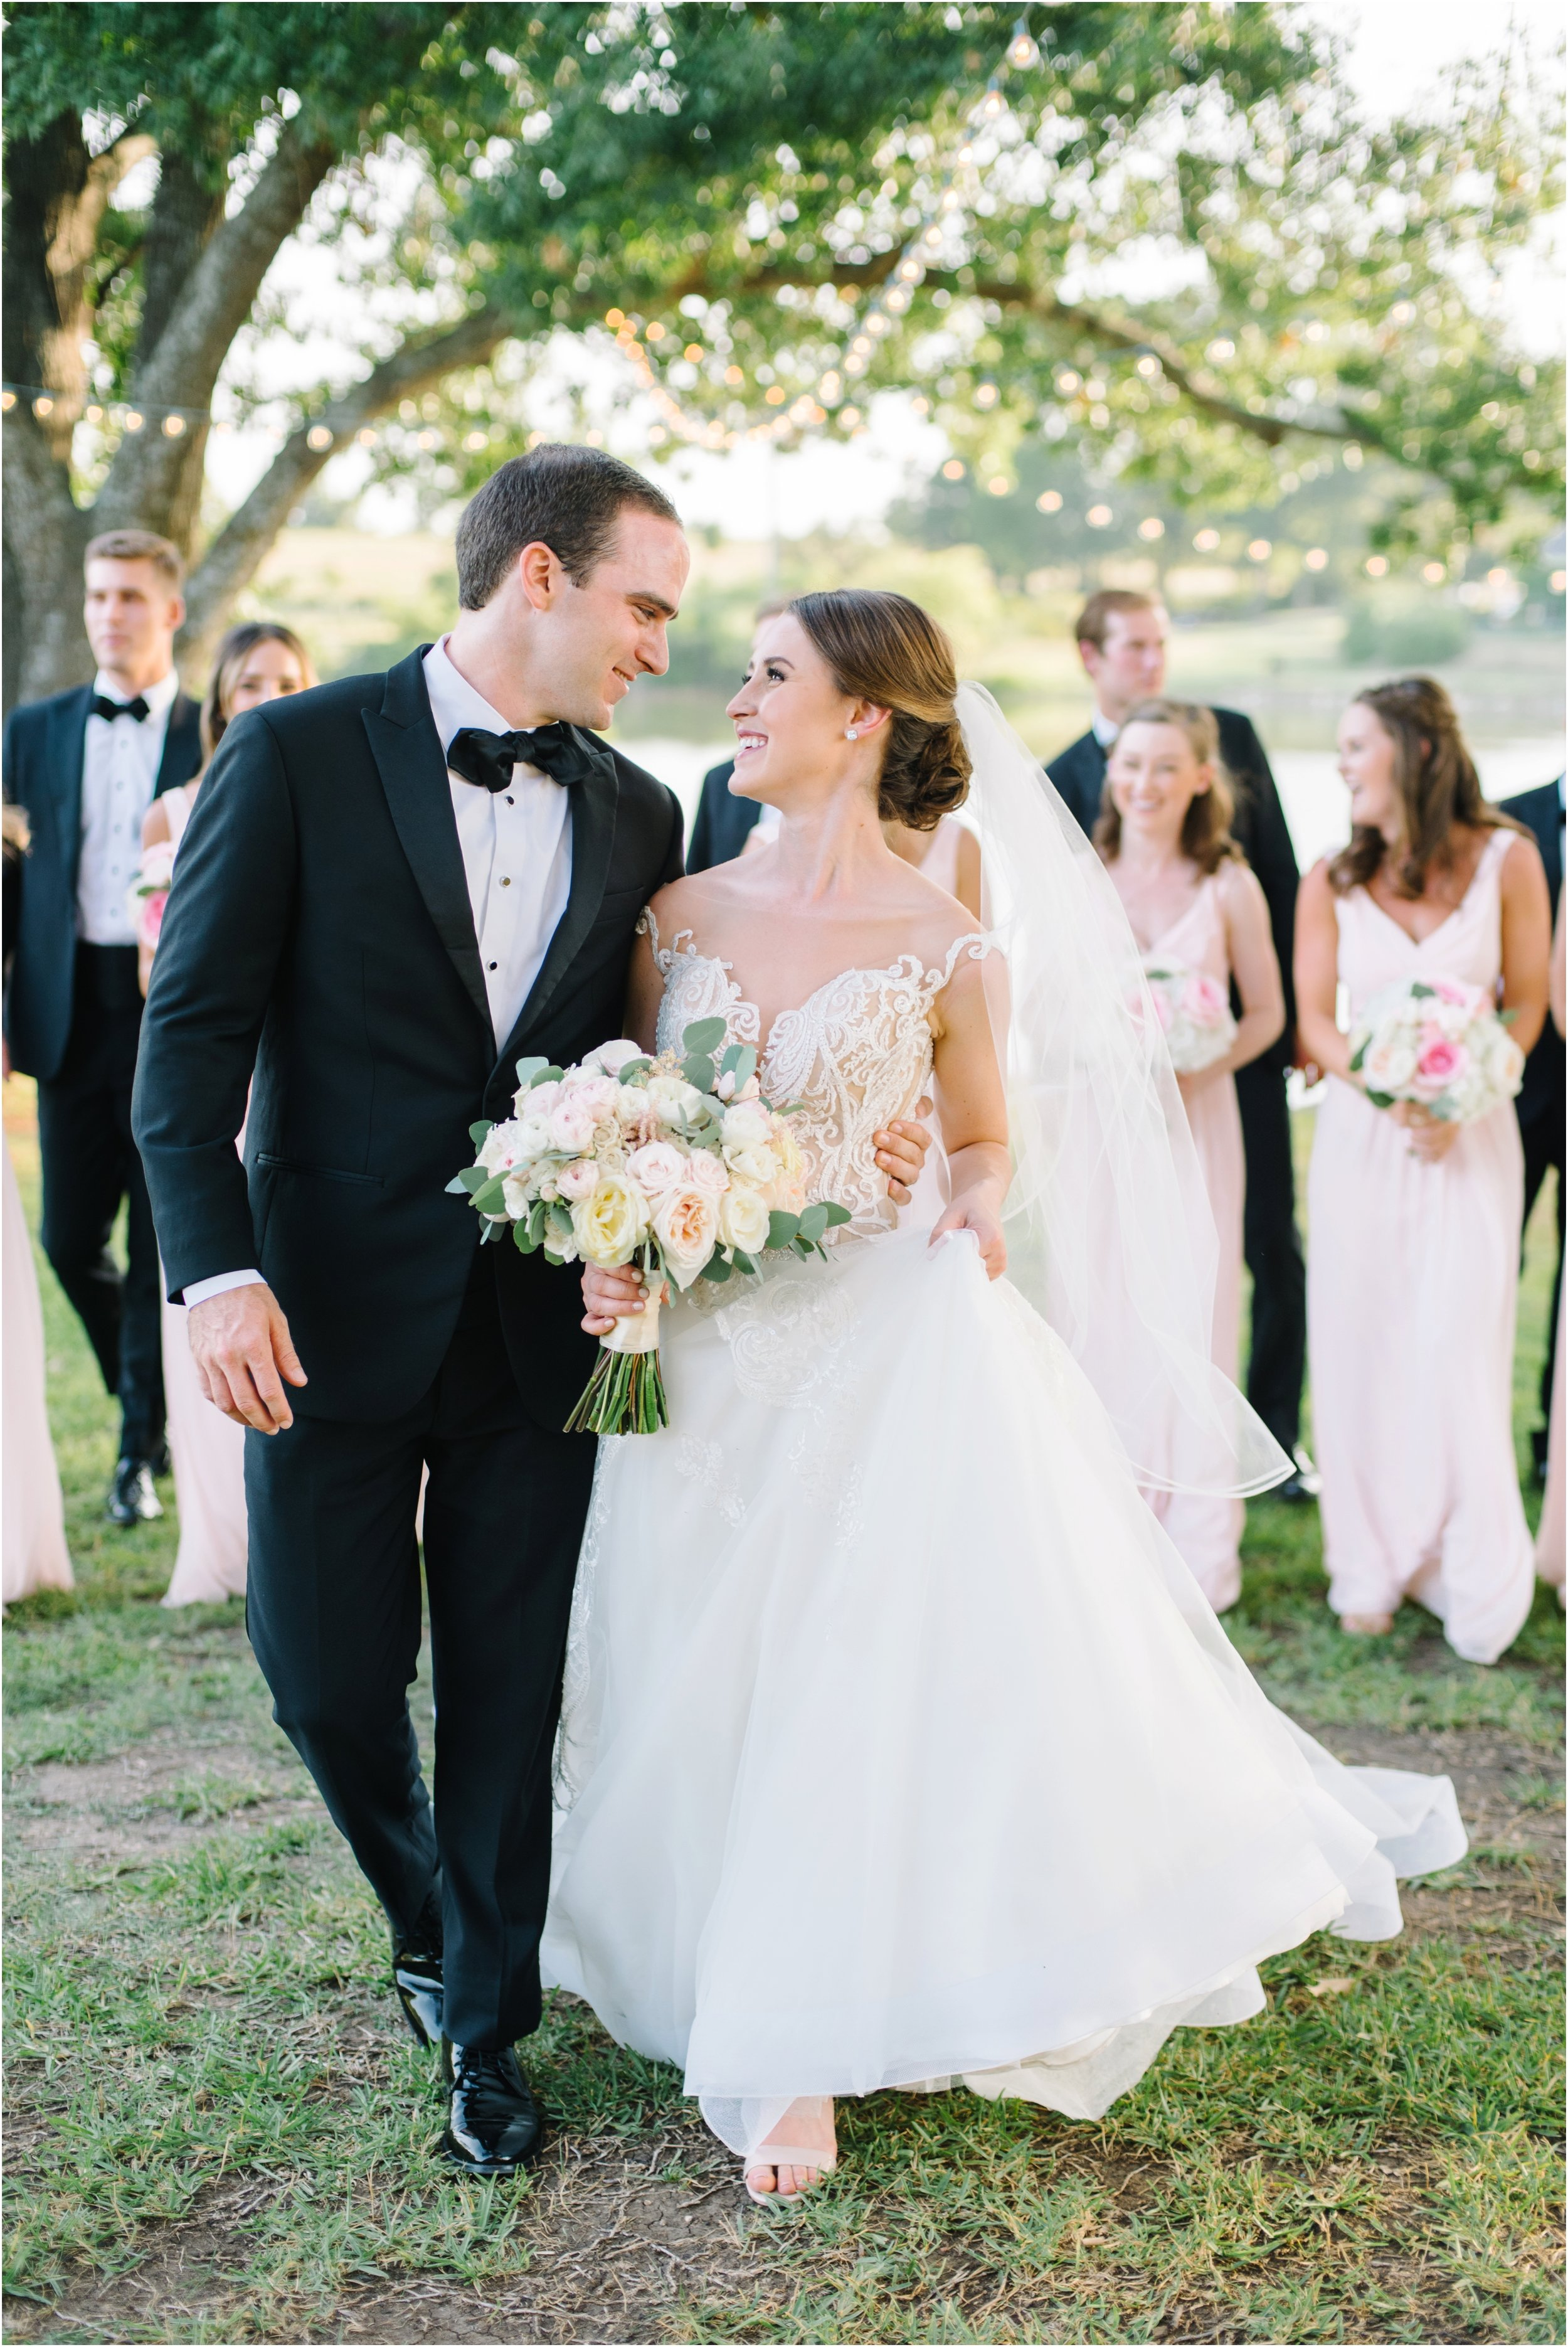 dallasweddingphotographer_fortworthweddingphotographer_texasweddingphotographer_mattandjulieweddings_whiterocklakewedding_KayleighClay_0029.jpg